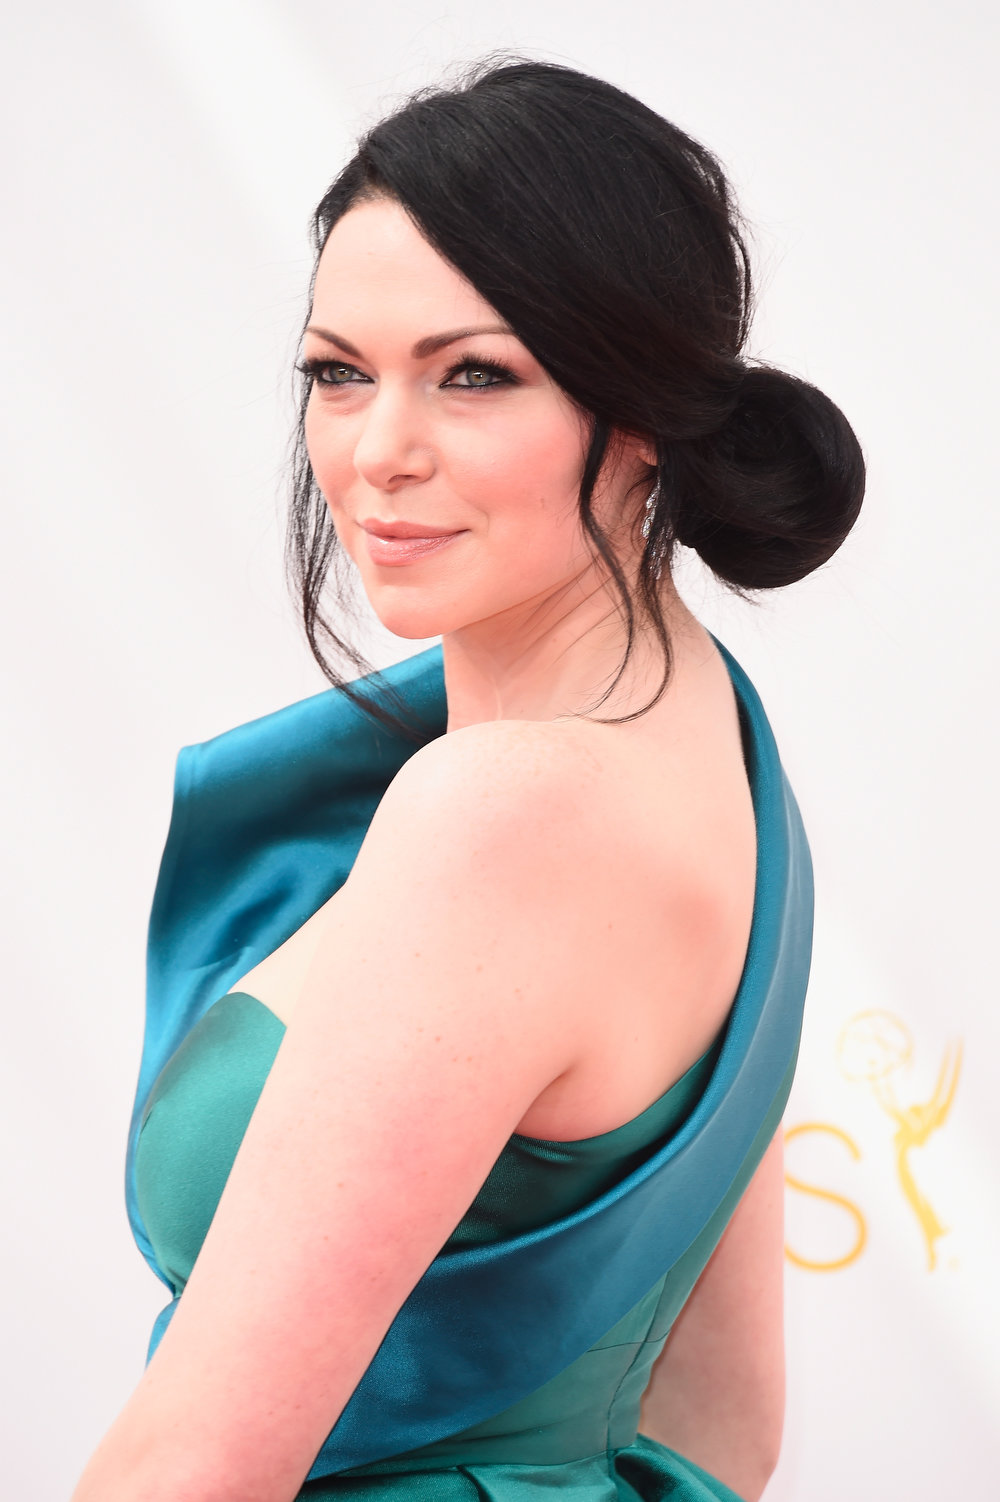 . Actress Laura Prepon attends the 66th Annual Primetime Emmy Awards held at Nokia Theatre L.A. Live on August 25, 2014 in Los Angeles, California.  (Photo by Frazer Harrison/Getty Images)